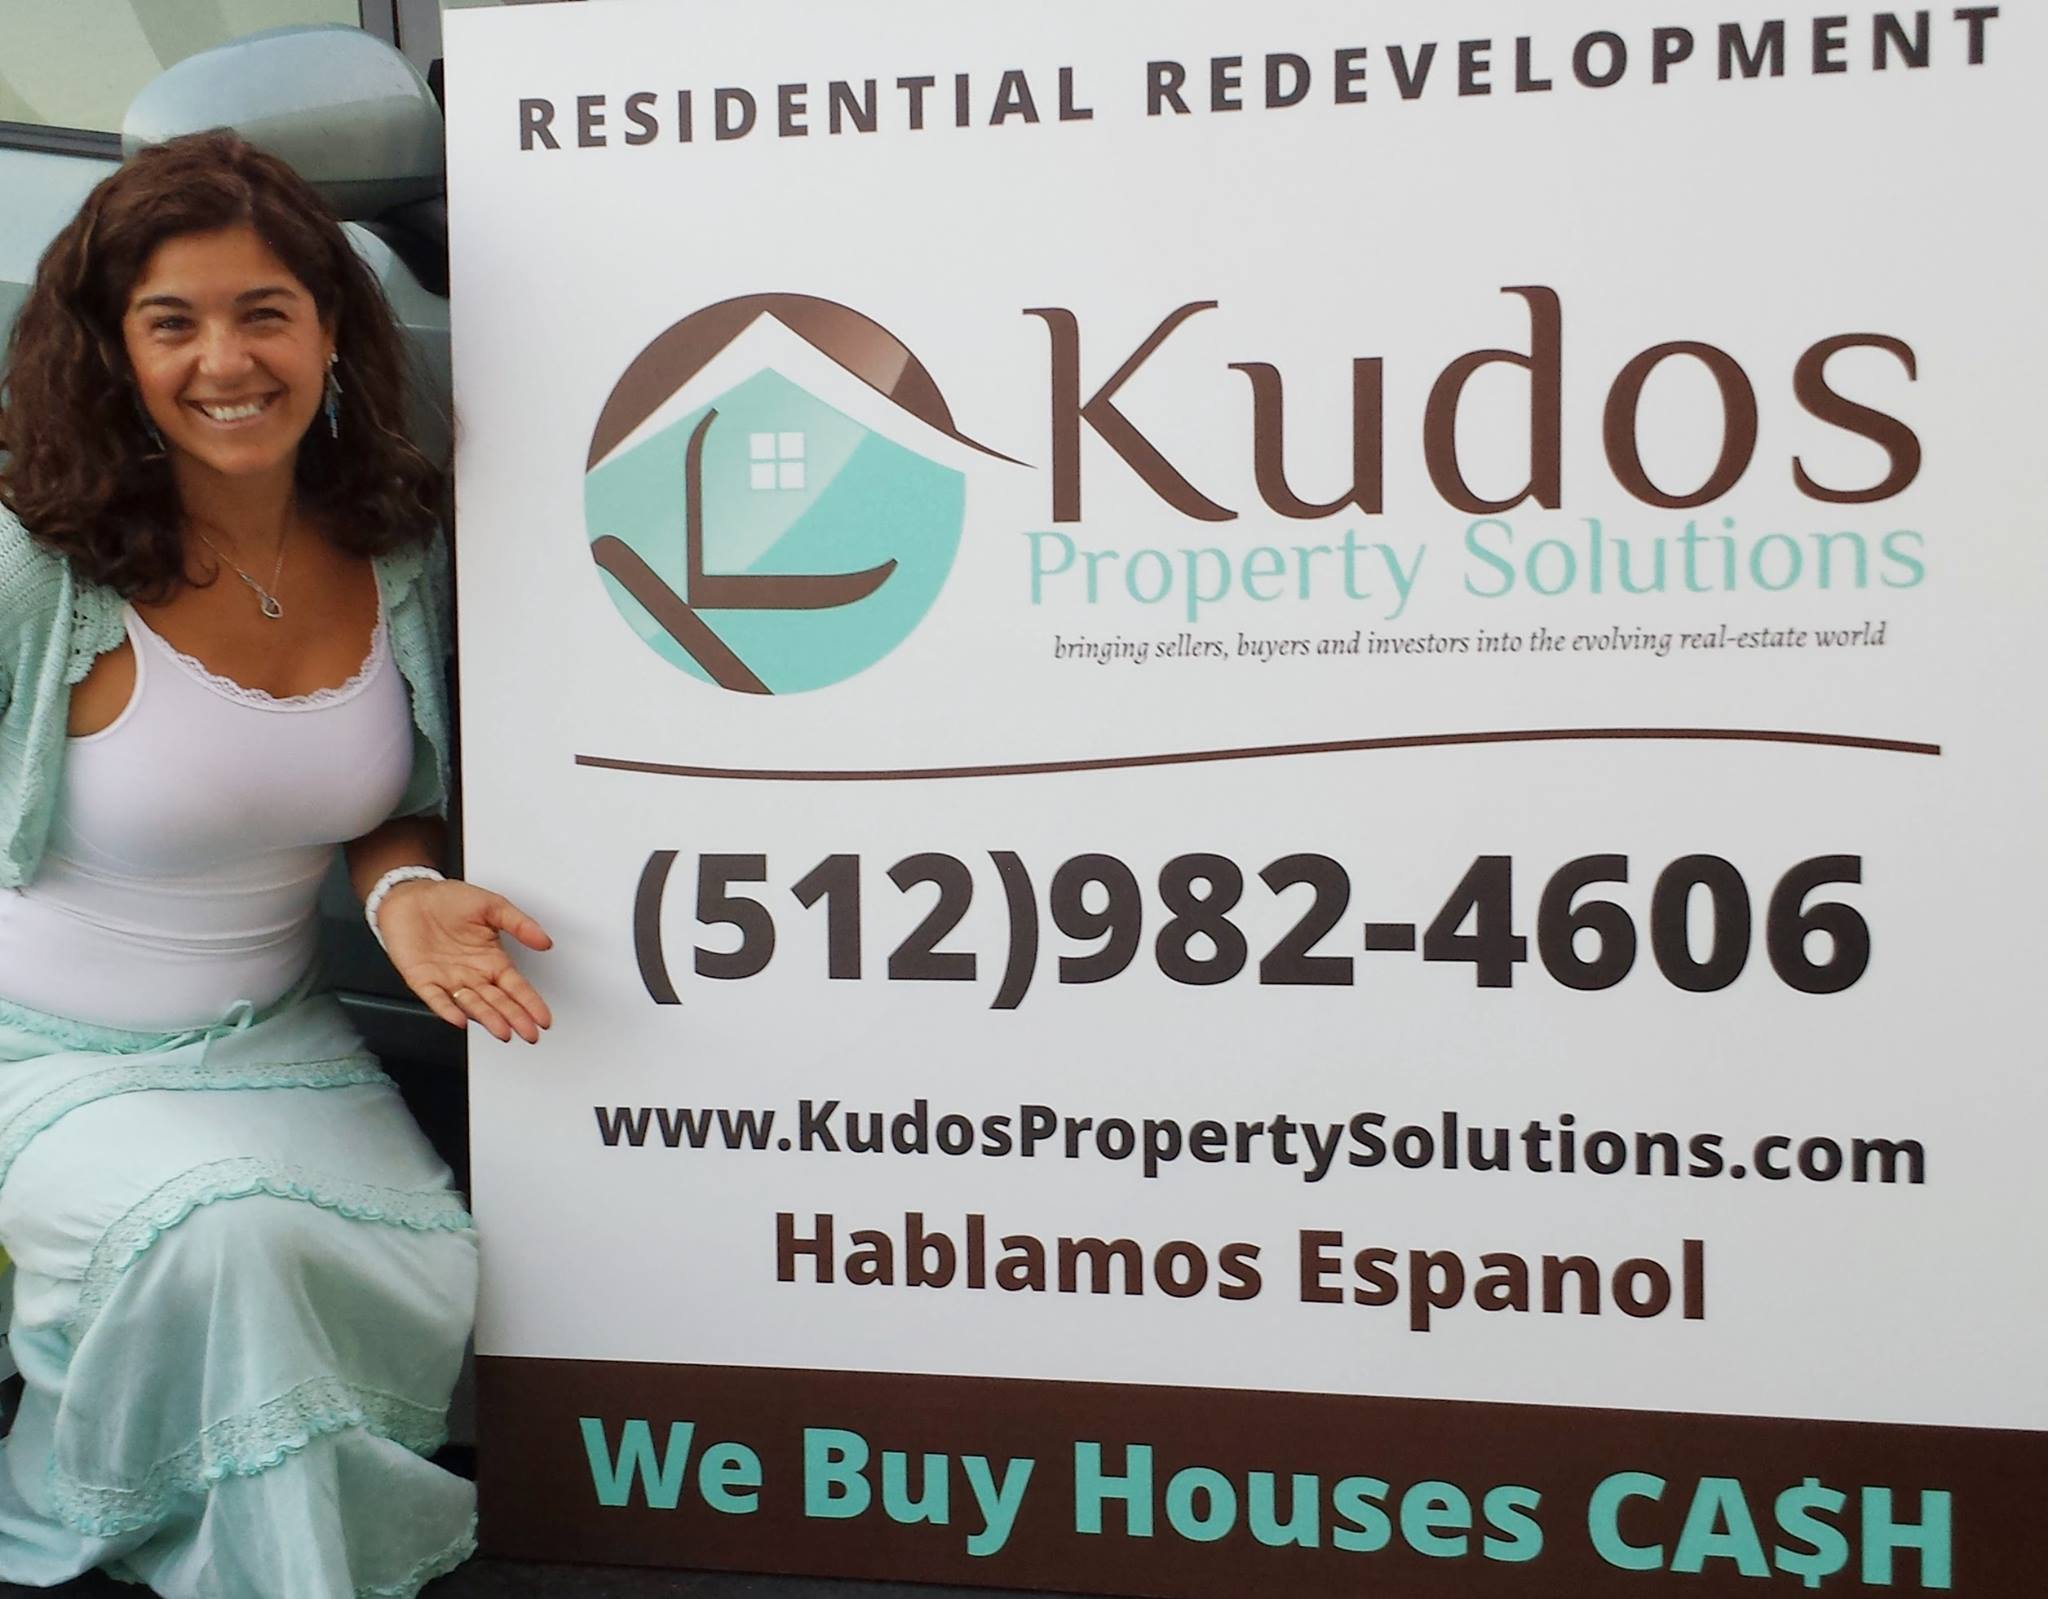 Kudos Property Solutions